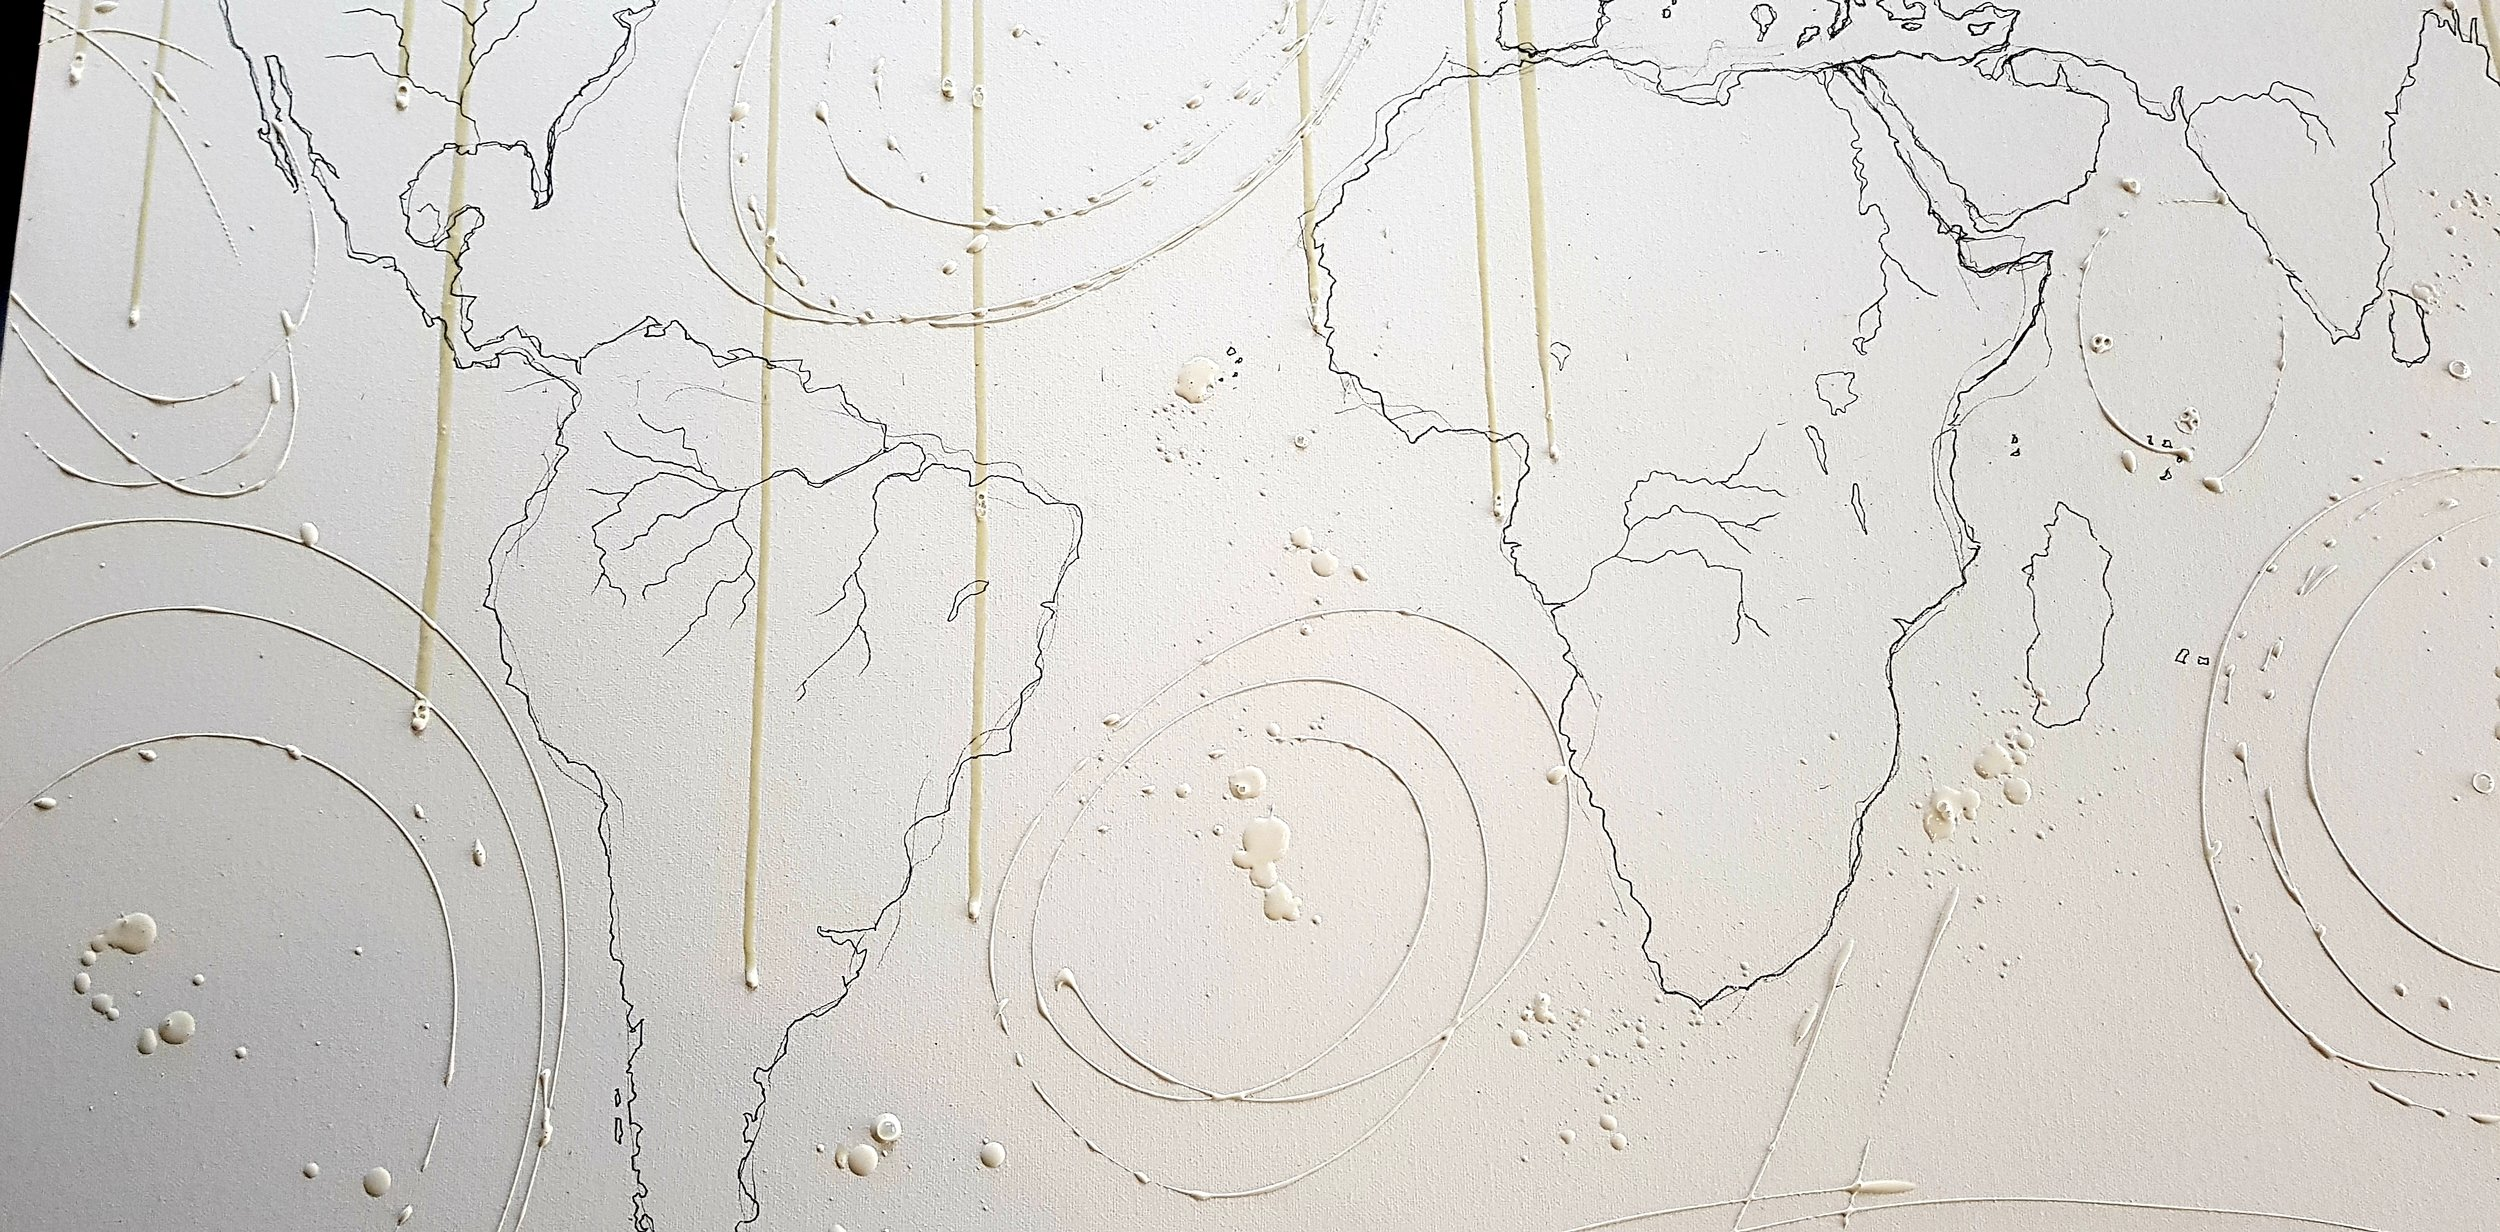 Here I have represented the major ocean currents in masking fluid. The ocean currents are the planets conveyor belt and are crucial to our climate. Healthy oceans pump rich organism rich waters around the globe like a living organism.